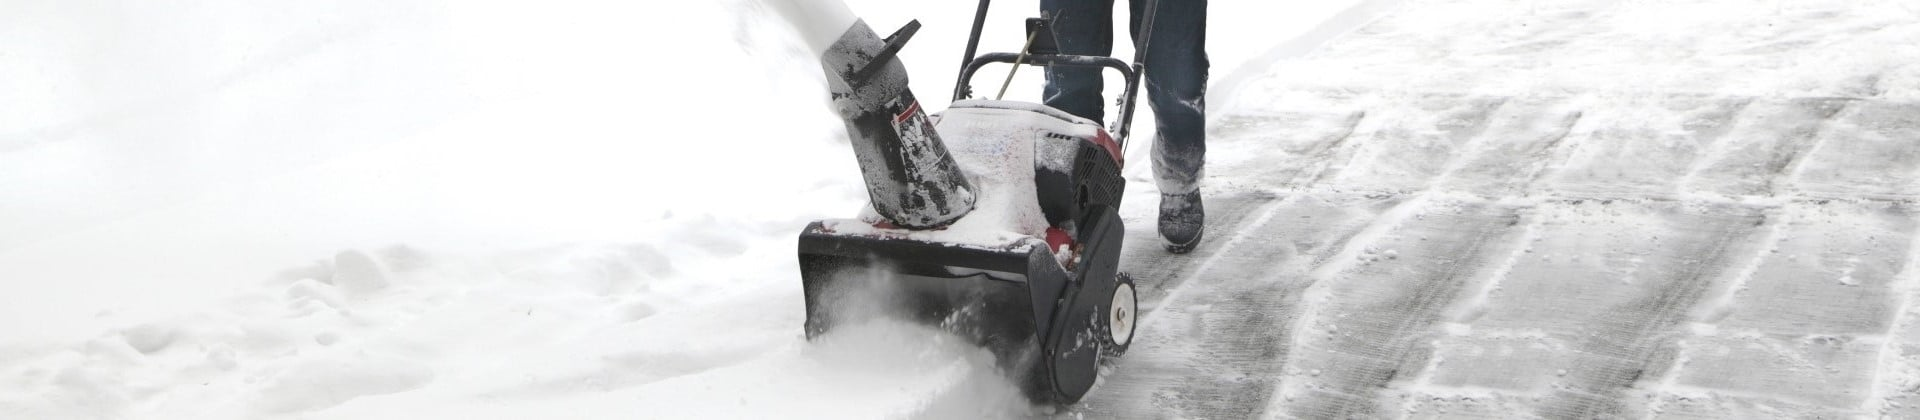 6 Awesome Snowblowers for Gravel Driveway – Clear the Snow Quickly and Safely!